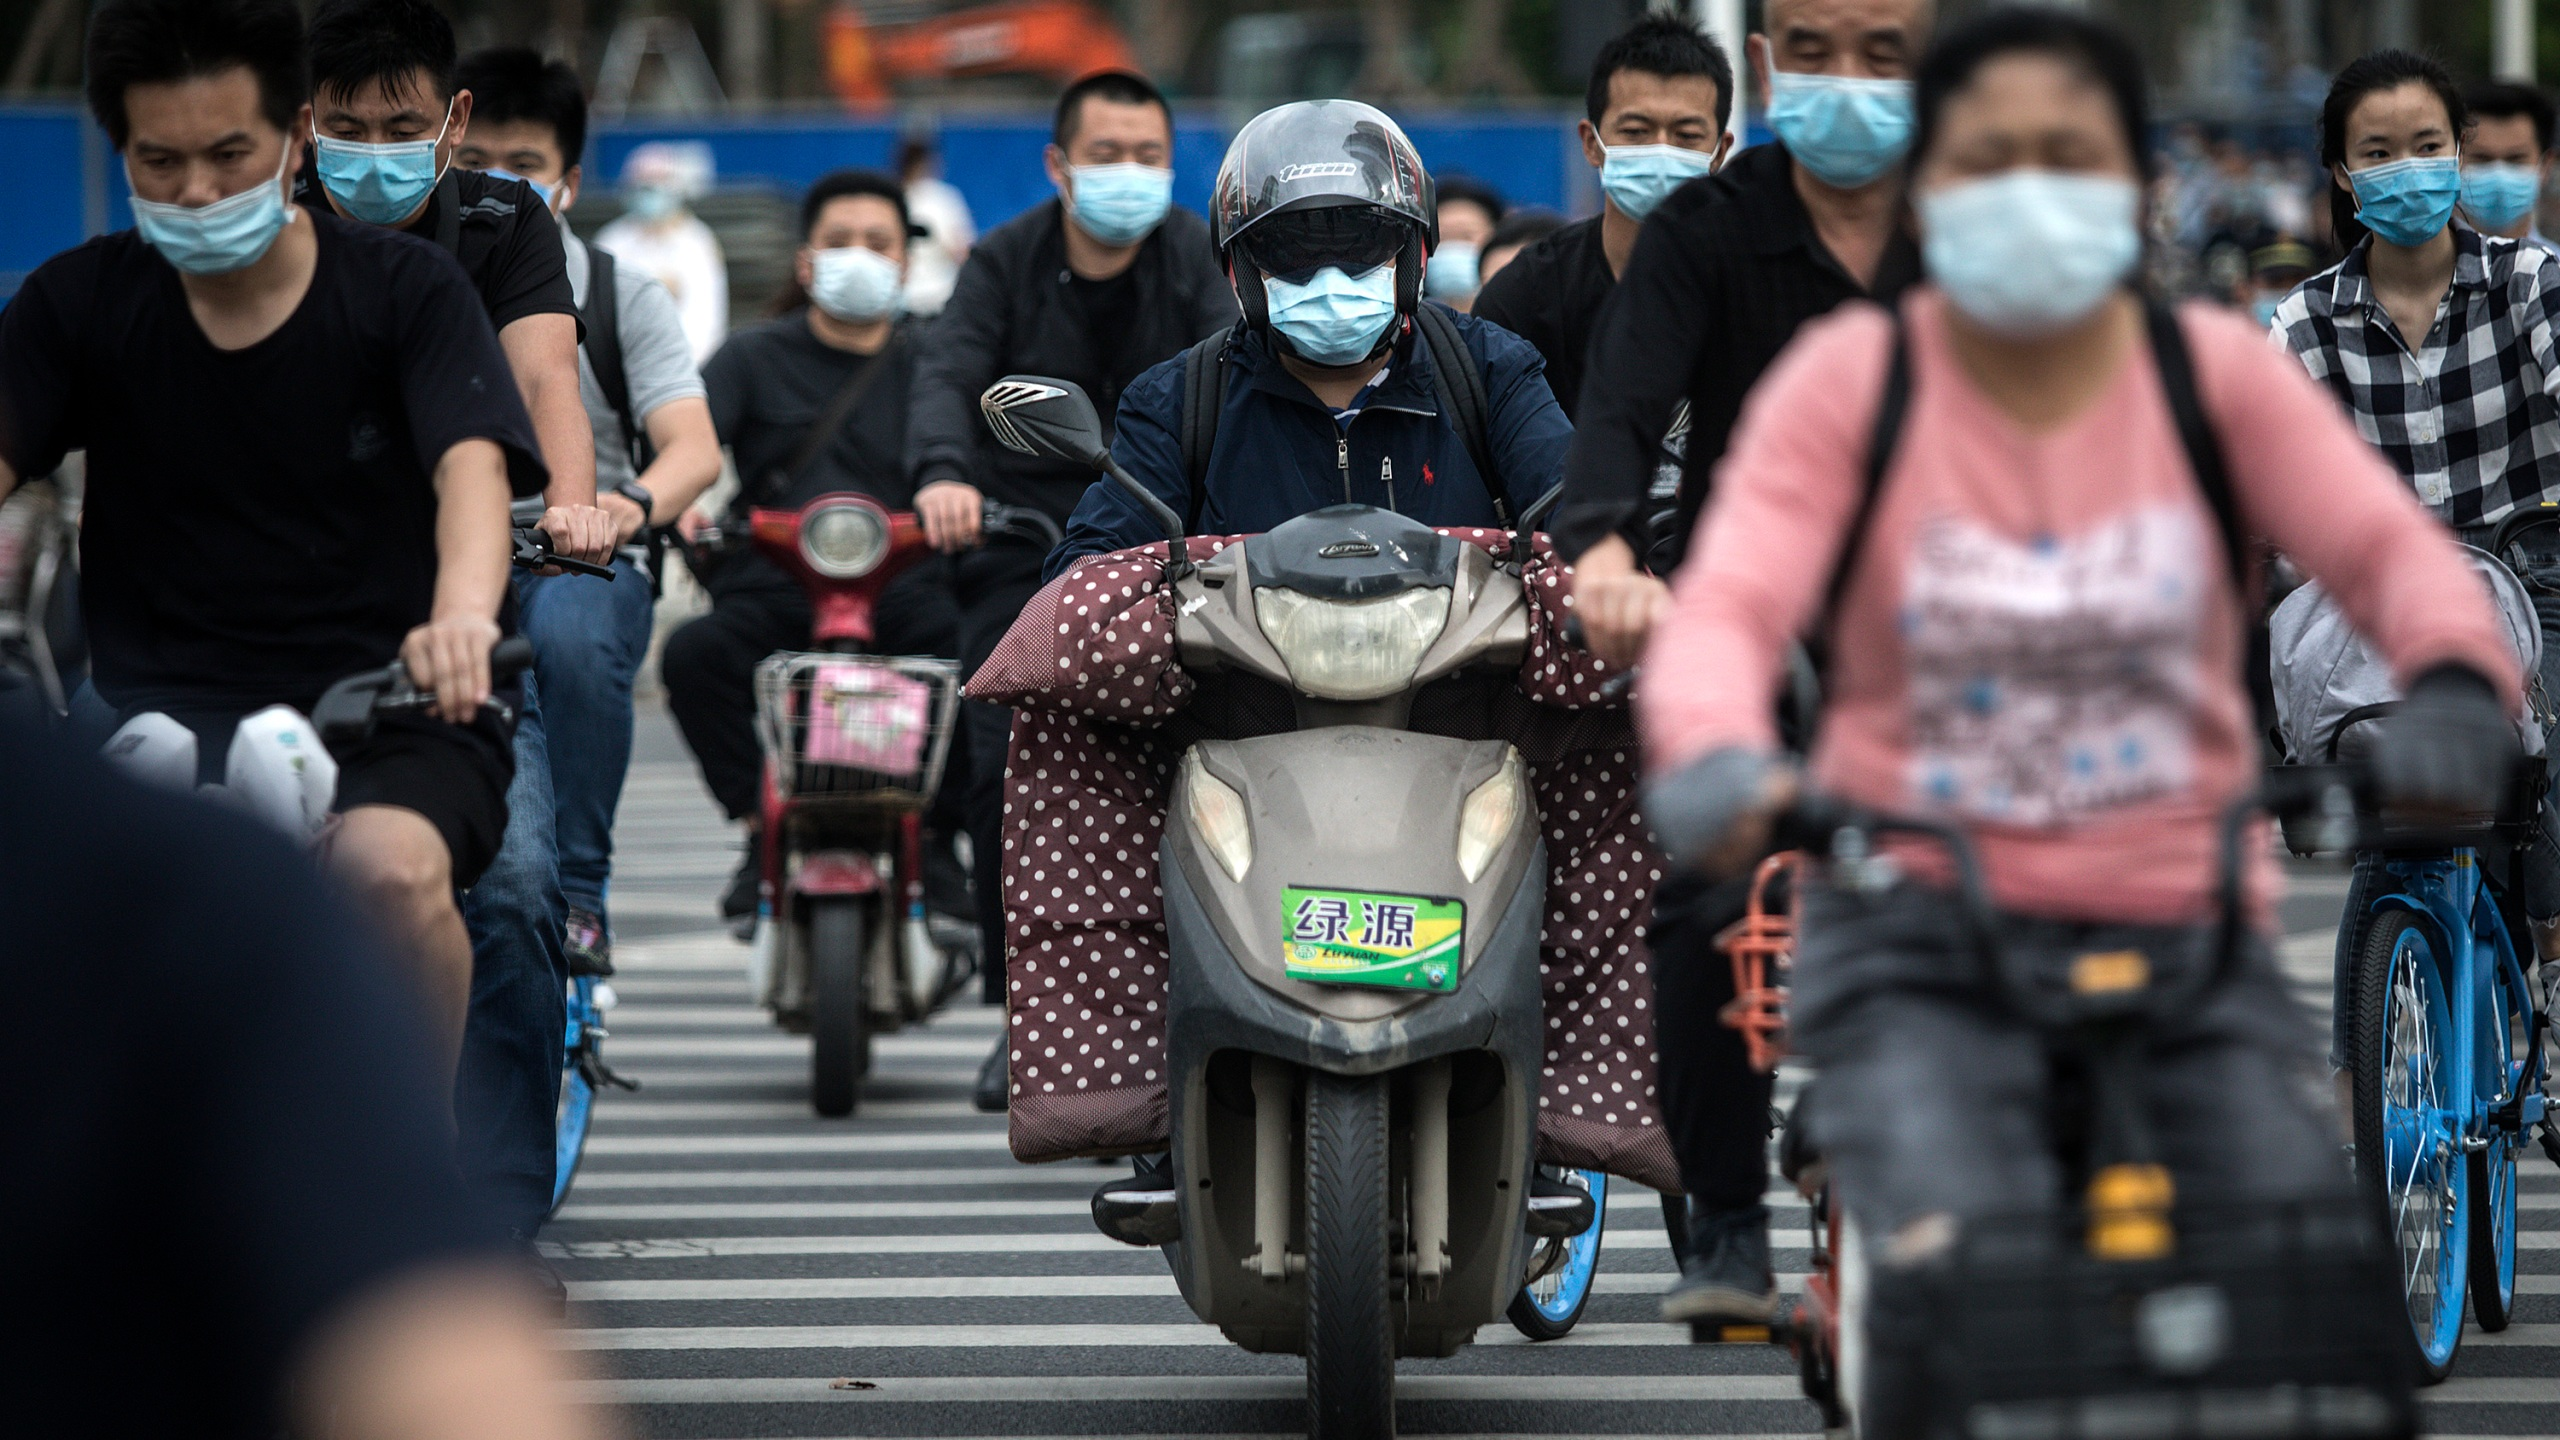 Residents wears face masks while riding their bicycles on May 11, 2020 in Wuhan, China. (Getty Images)